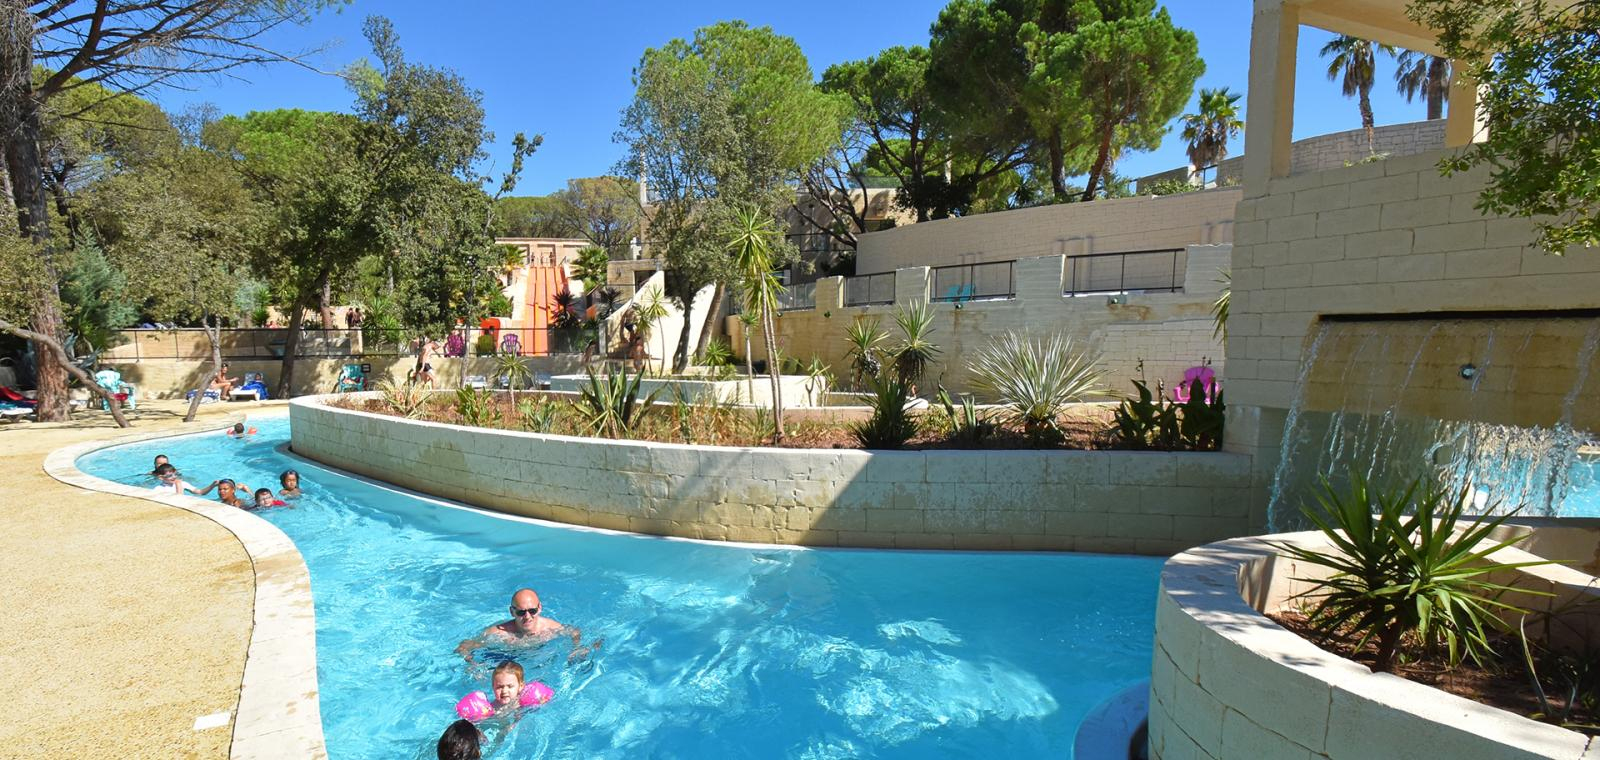 Camping Les Cigales In Le Muy, 4 Stars, Var, French Riviera encequiconcerne Camping Var Avec Piscine